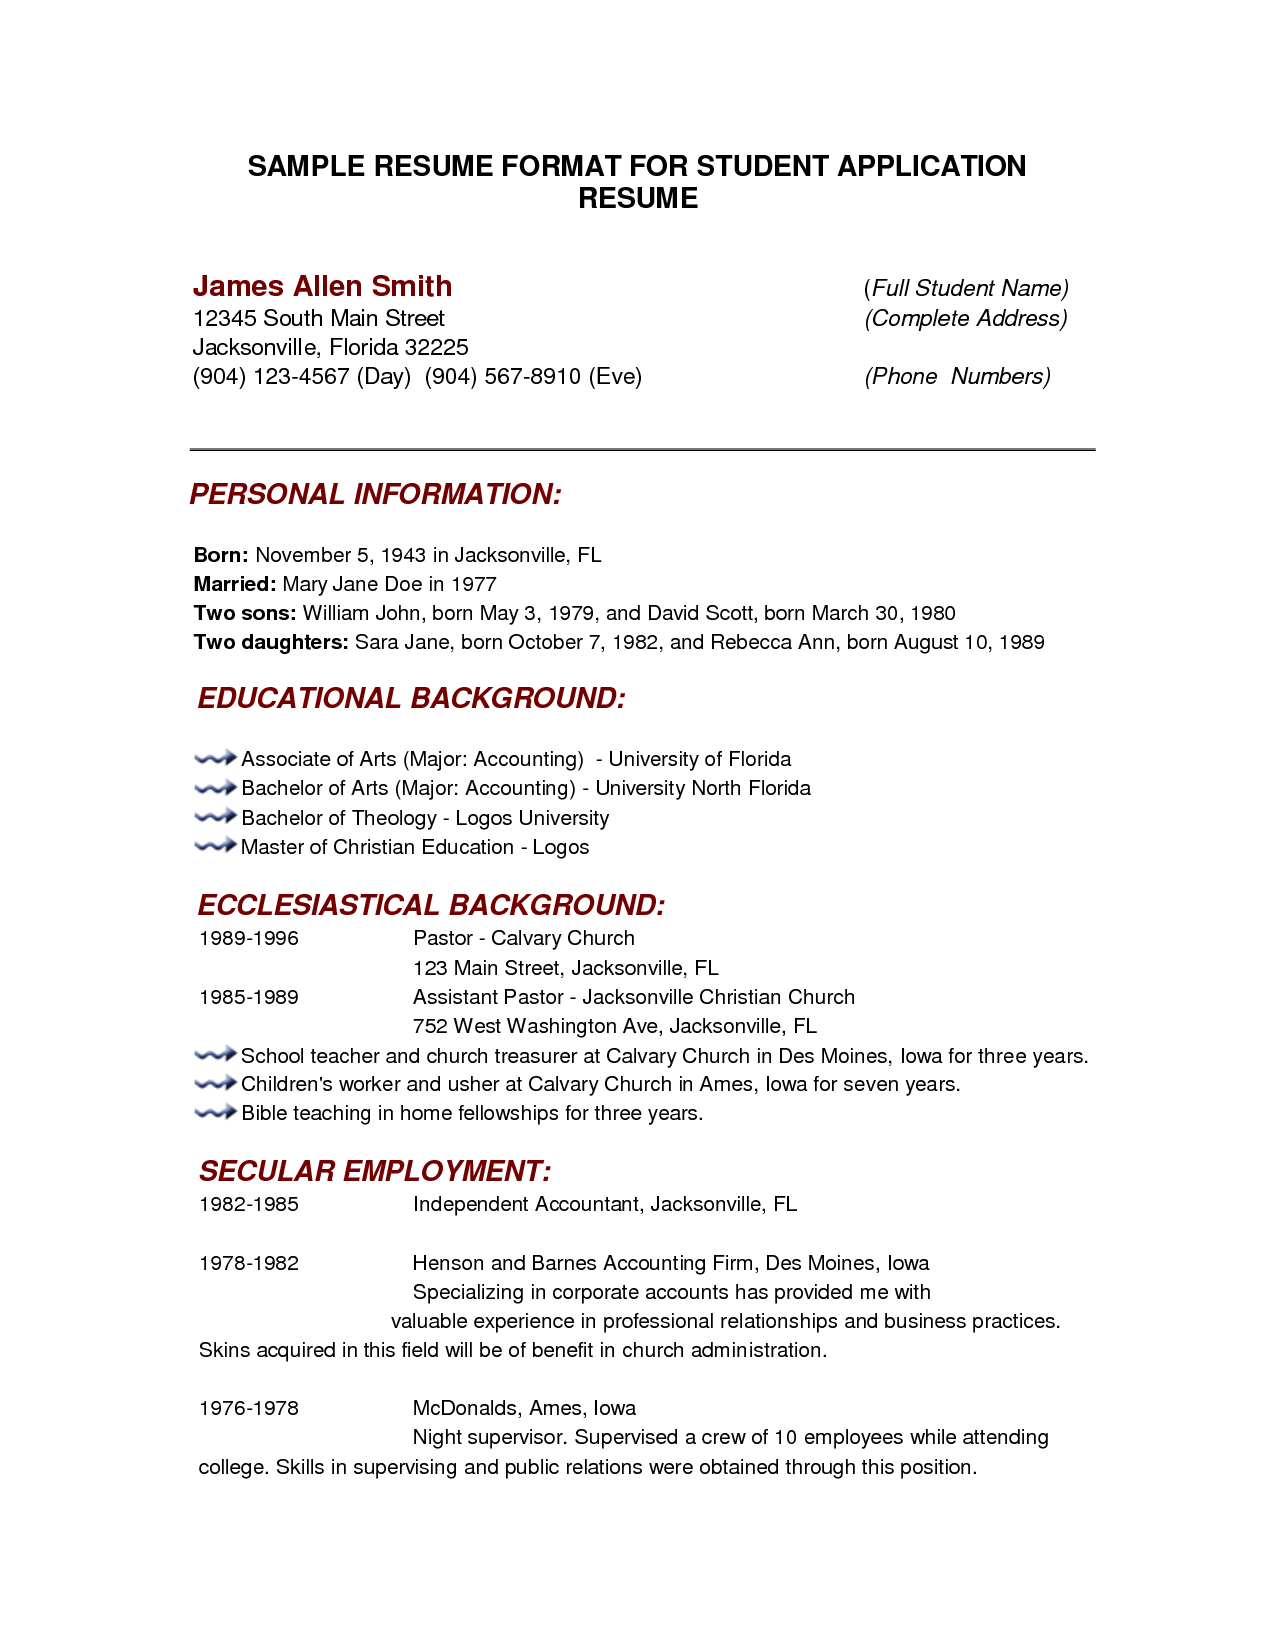 Full Block Resume Format Style For Business Letter Examples Basic Template  Free Samples  Basic Resume Sample